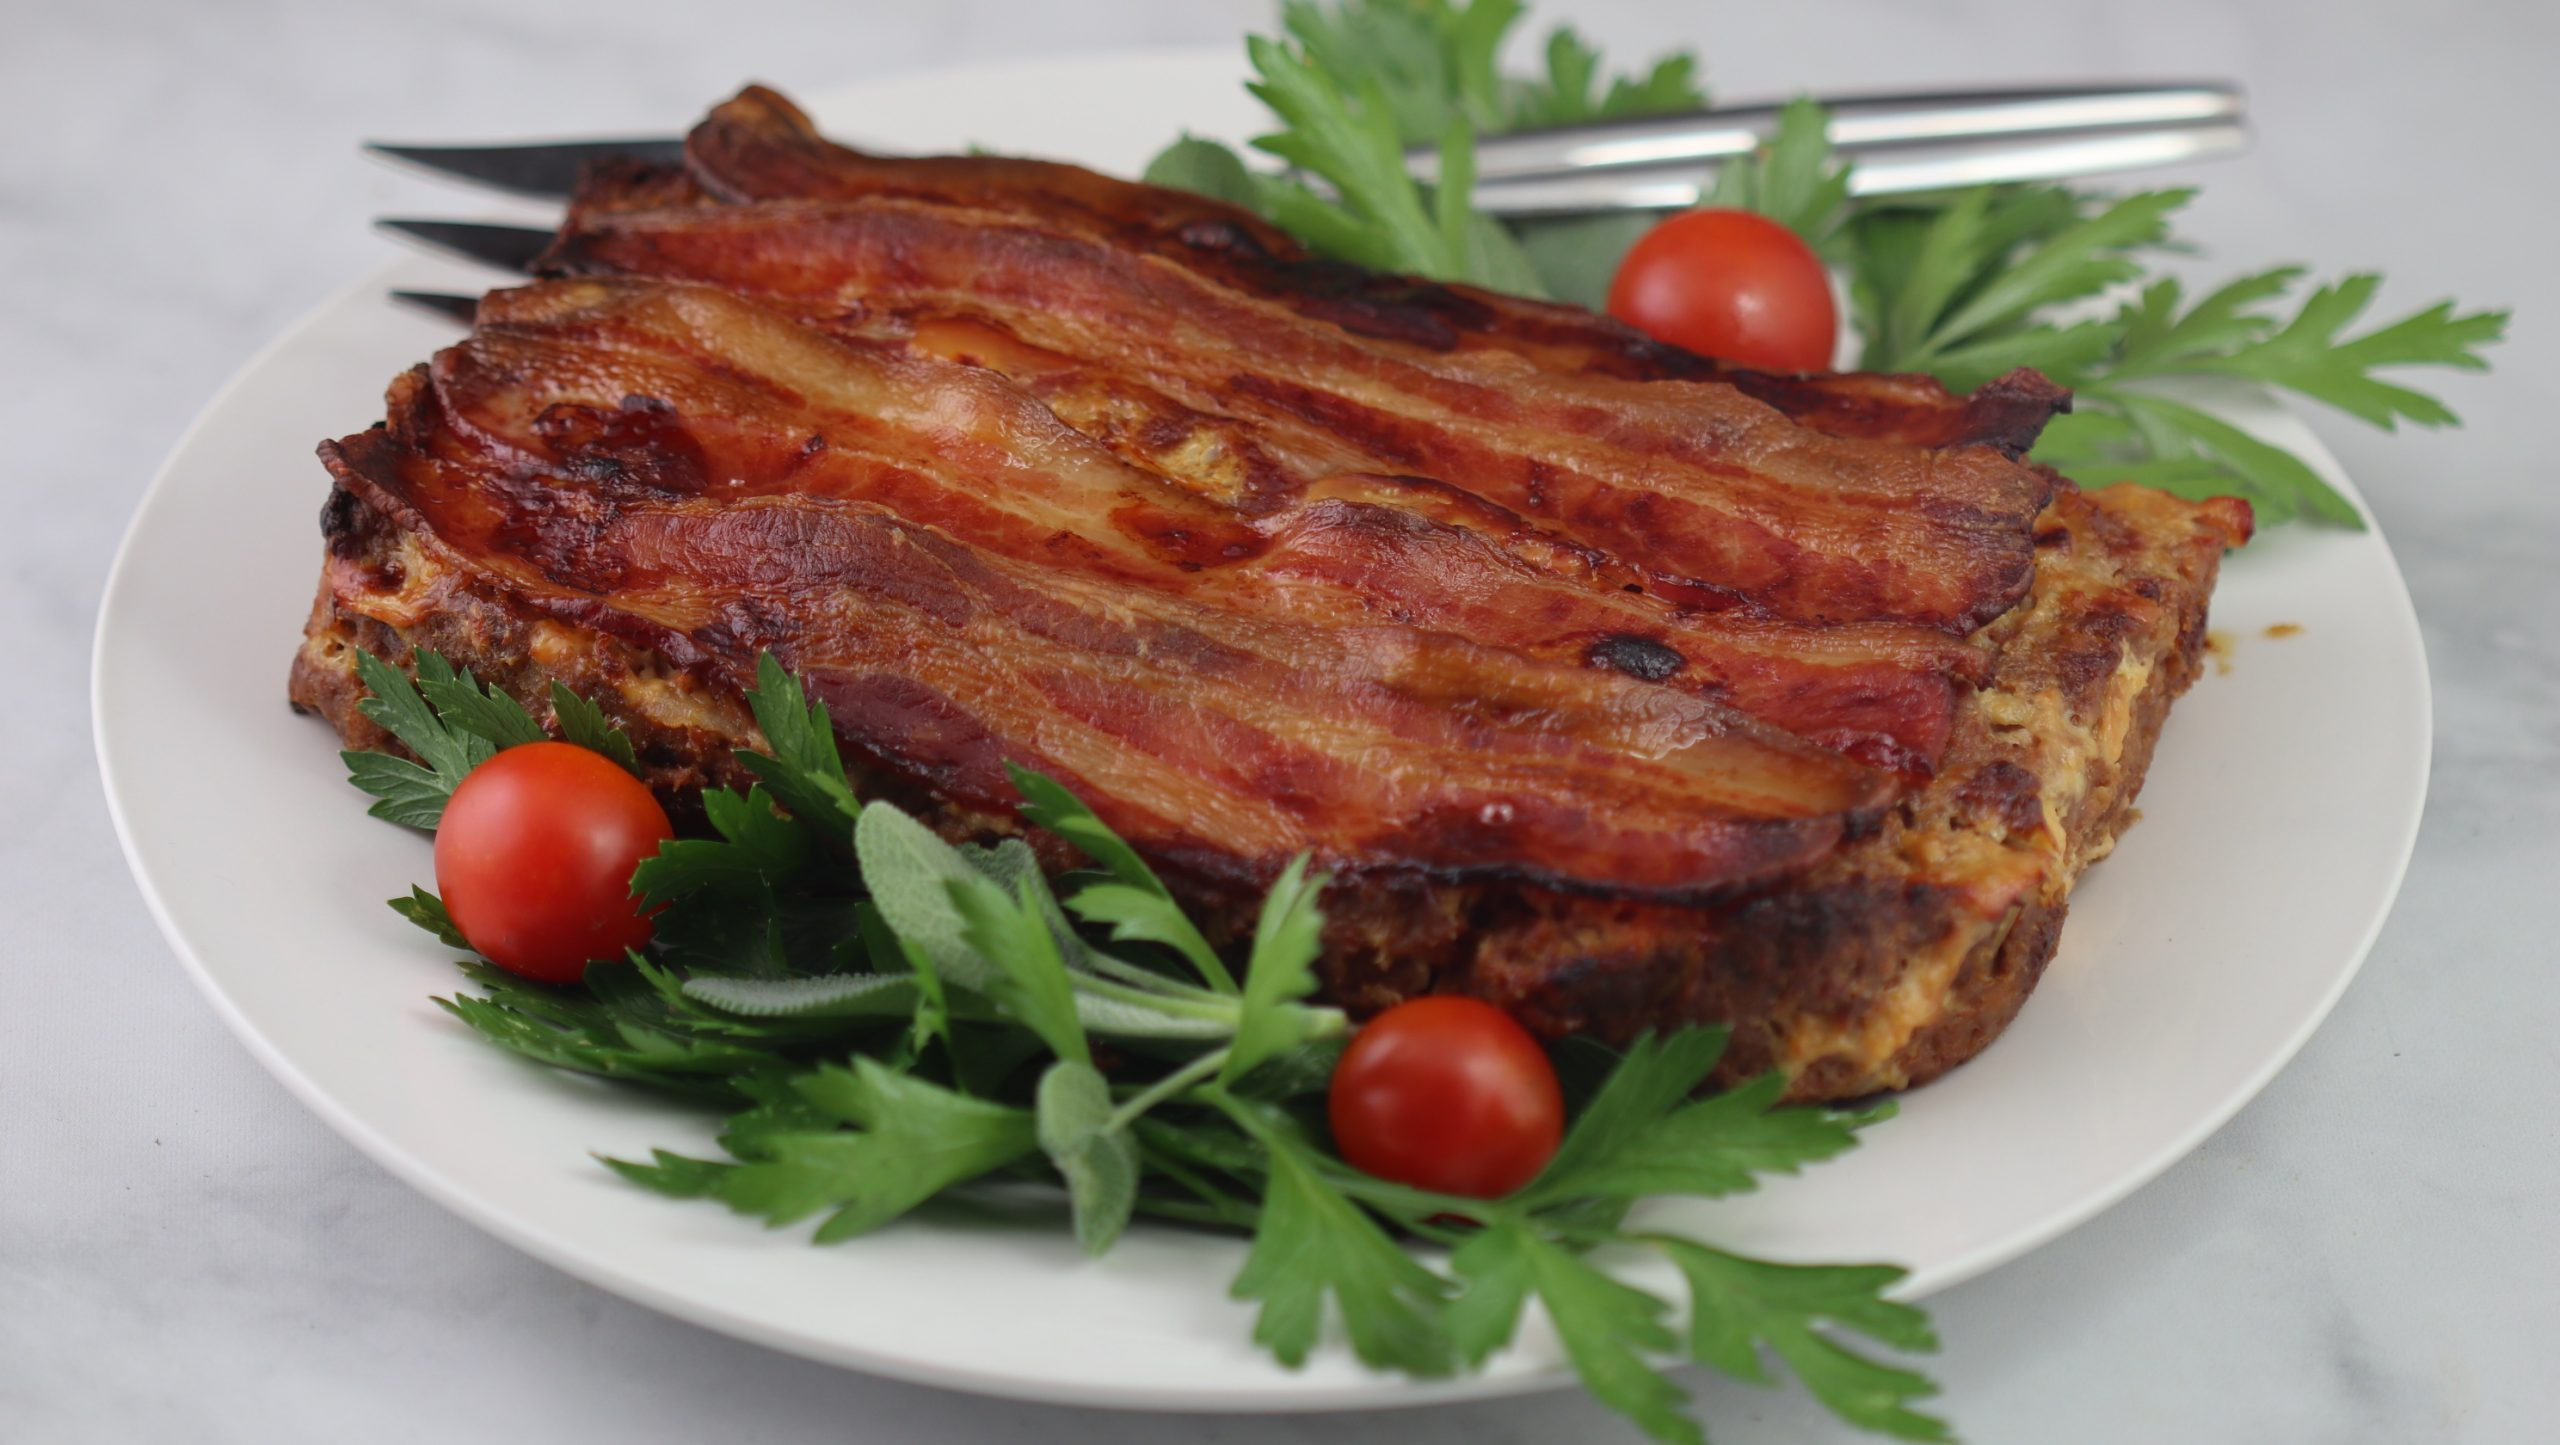 Meatloaf topped with Bacon